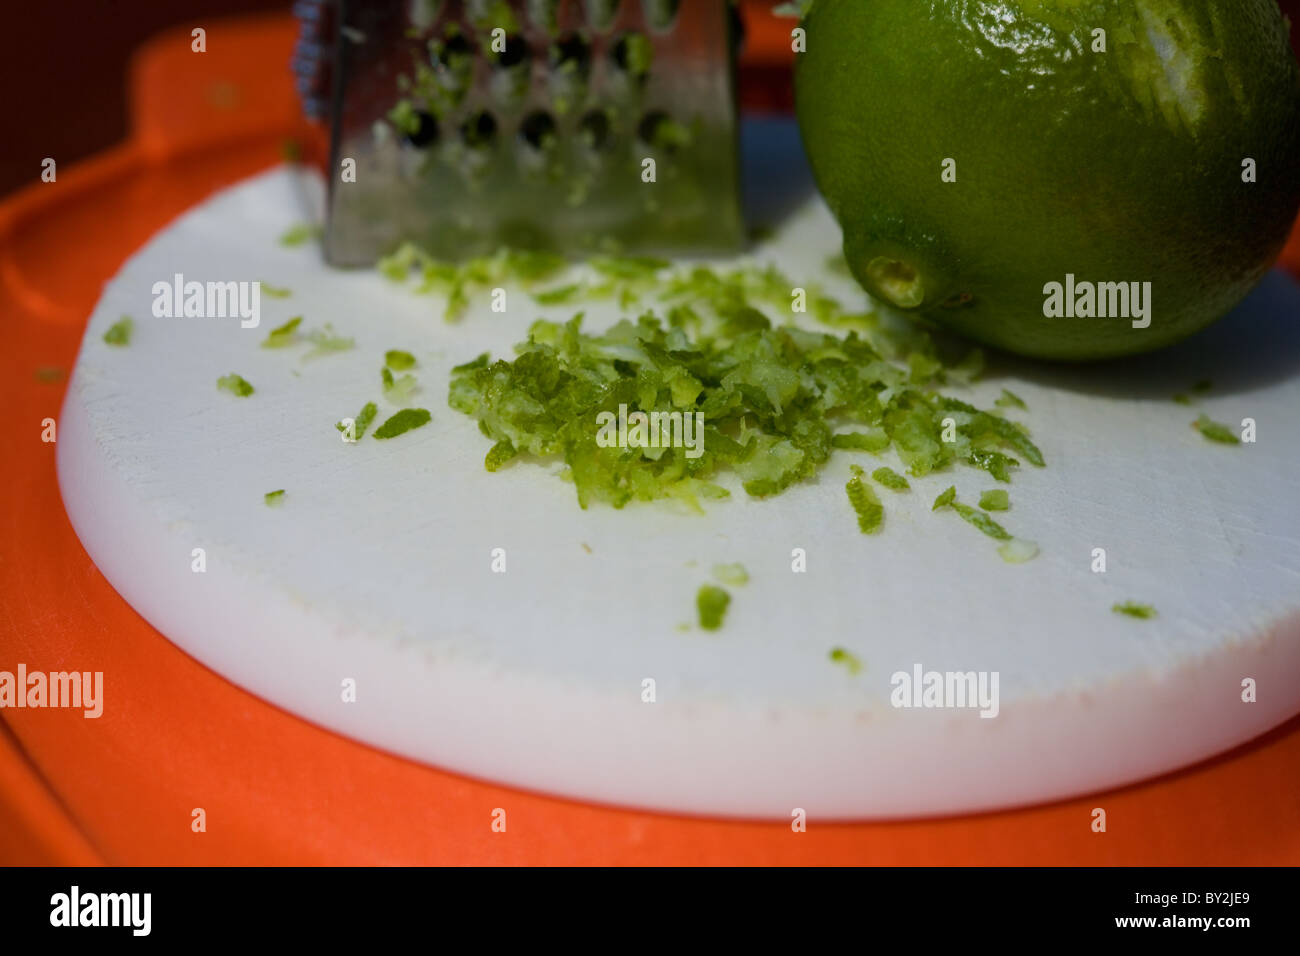 Grated keylime rind or zest with a grater - Stock Image